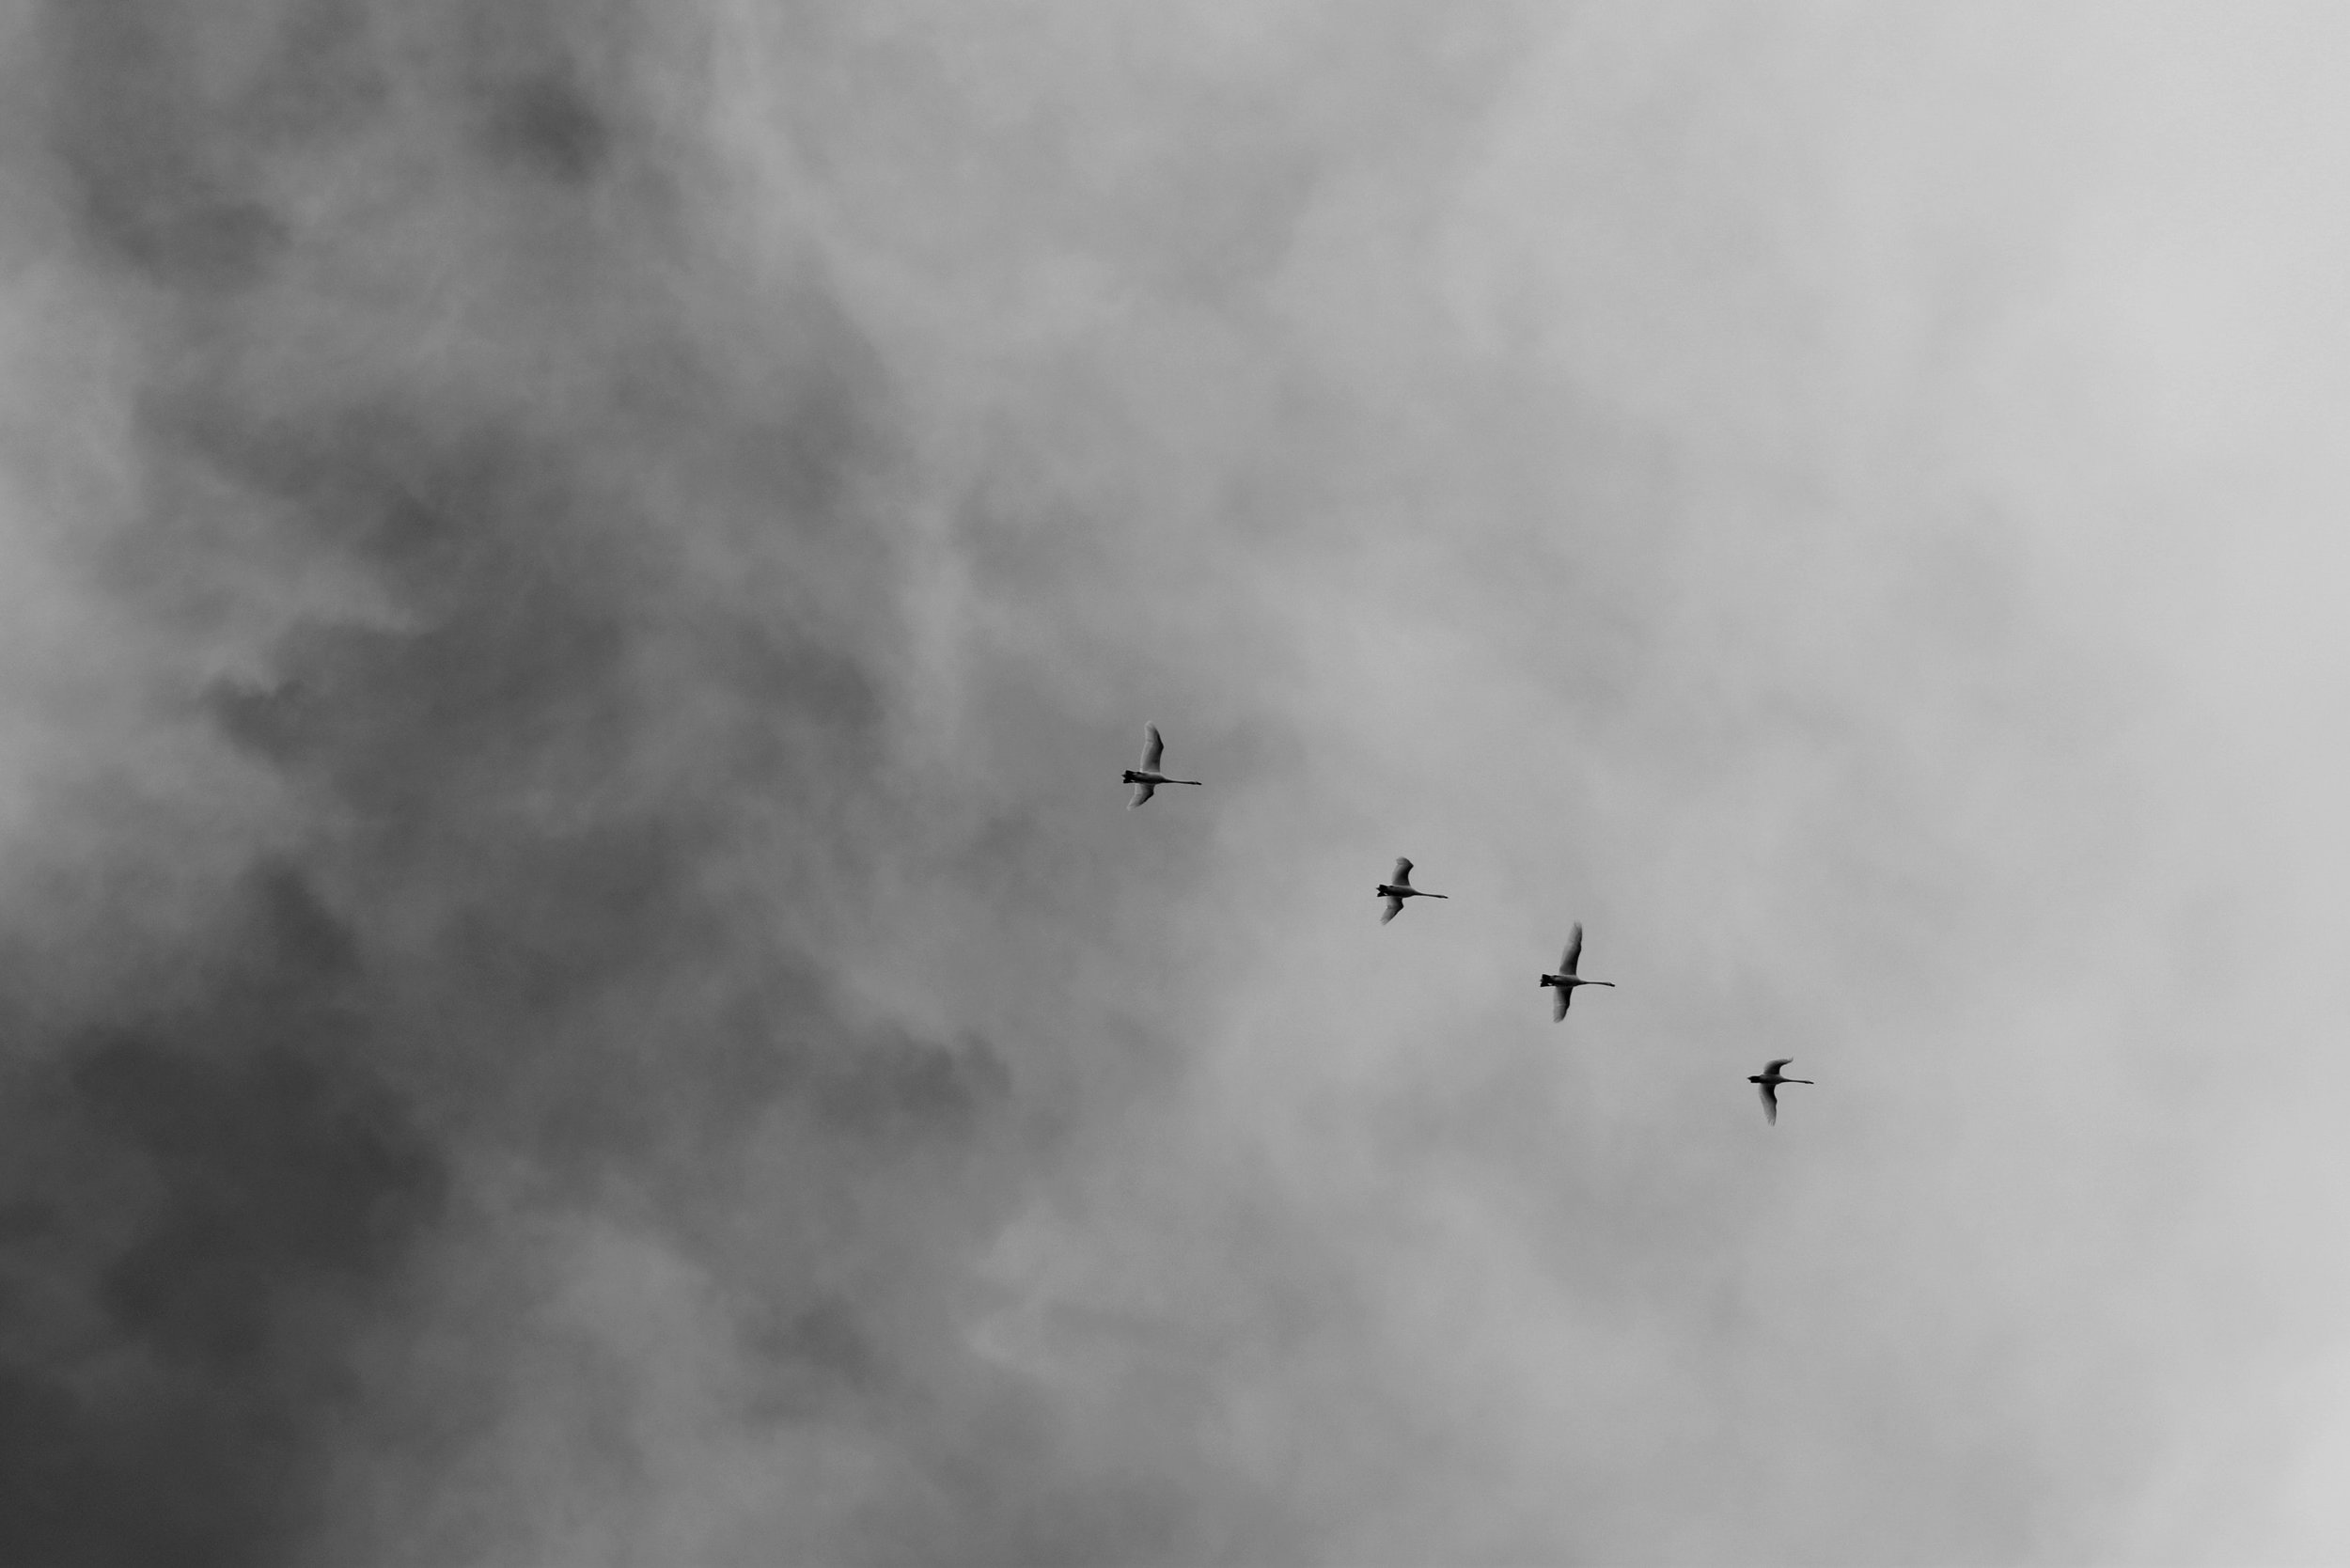 action-black-and-white-clouds-937766.jpg